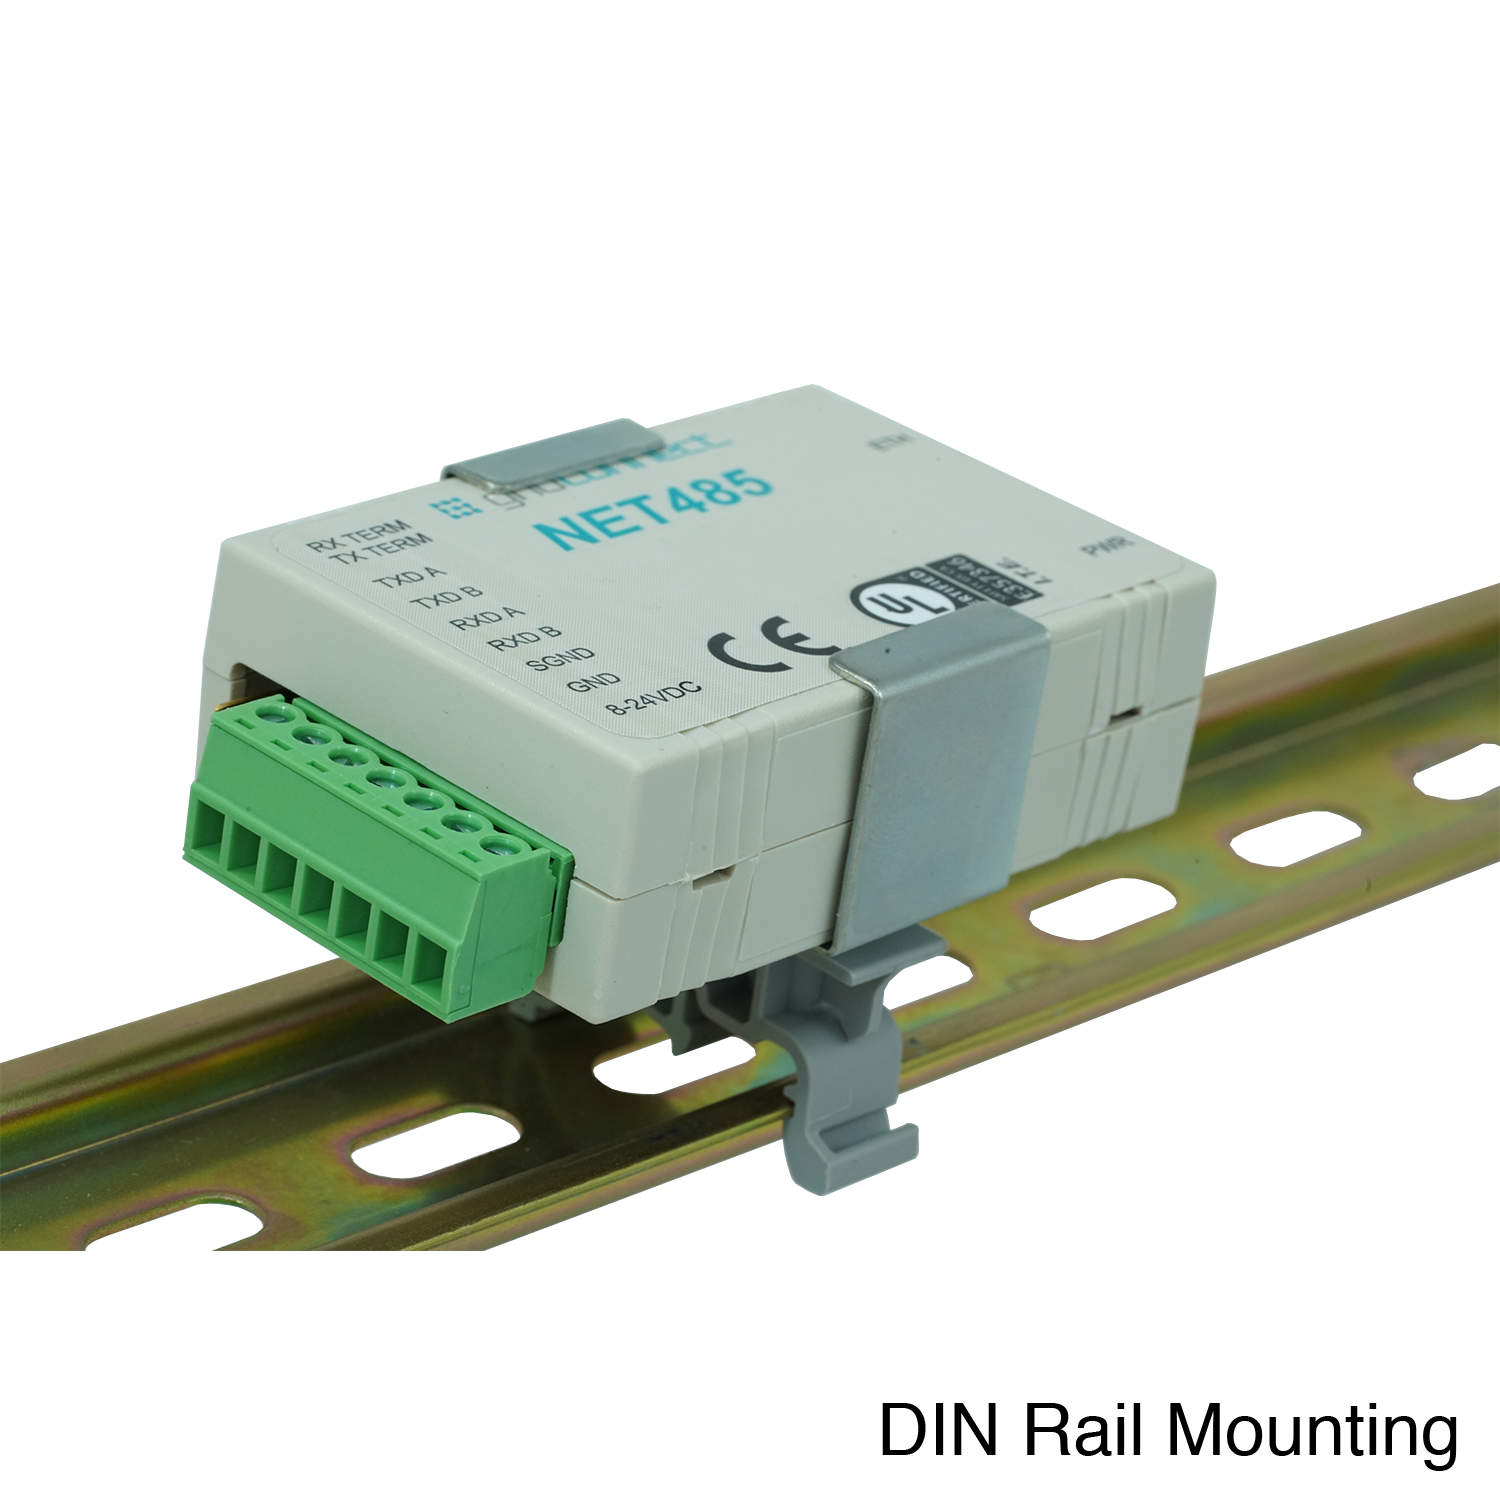 Net485 EtherNet/IP- Serial RS422 / 485 Modbus to EtherNet/IP